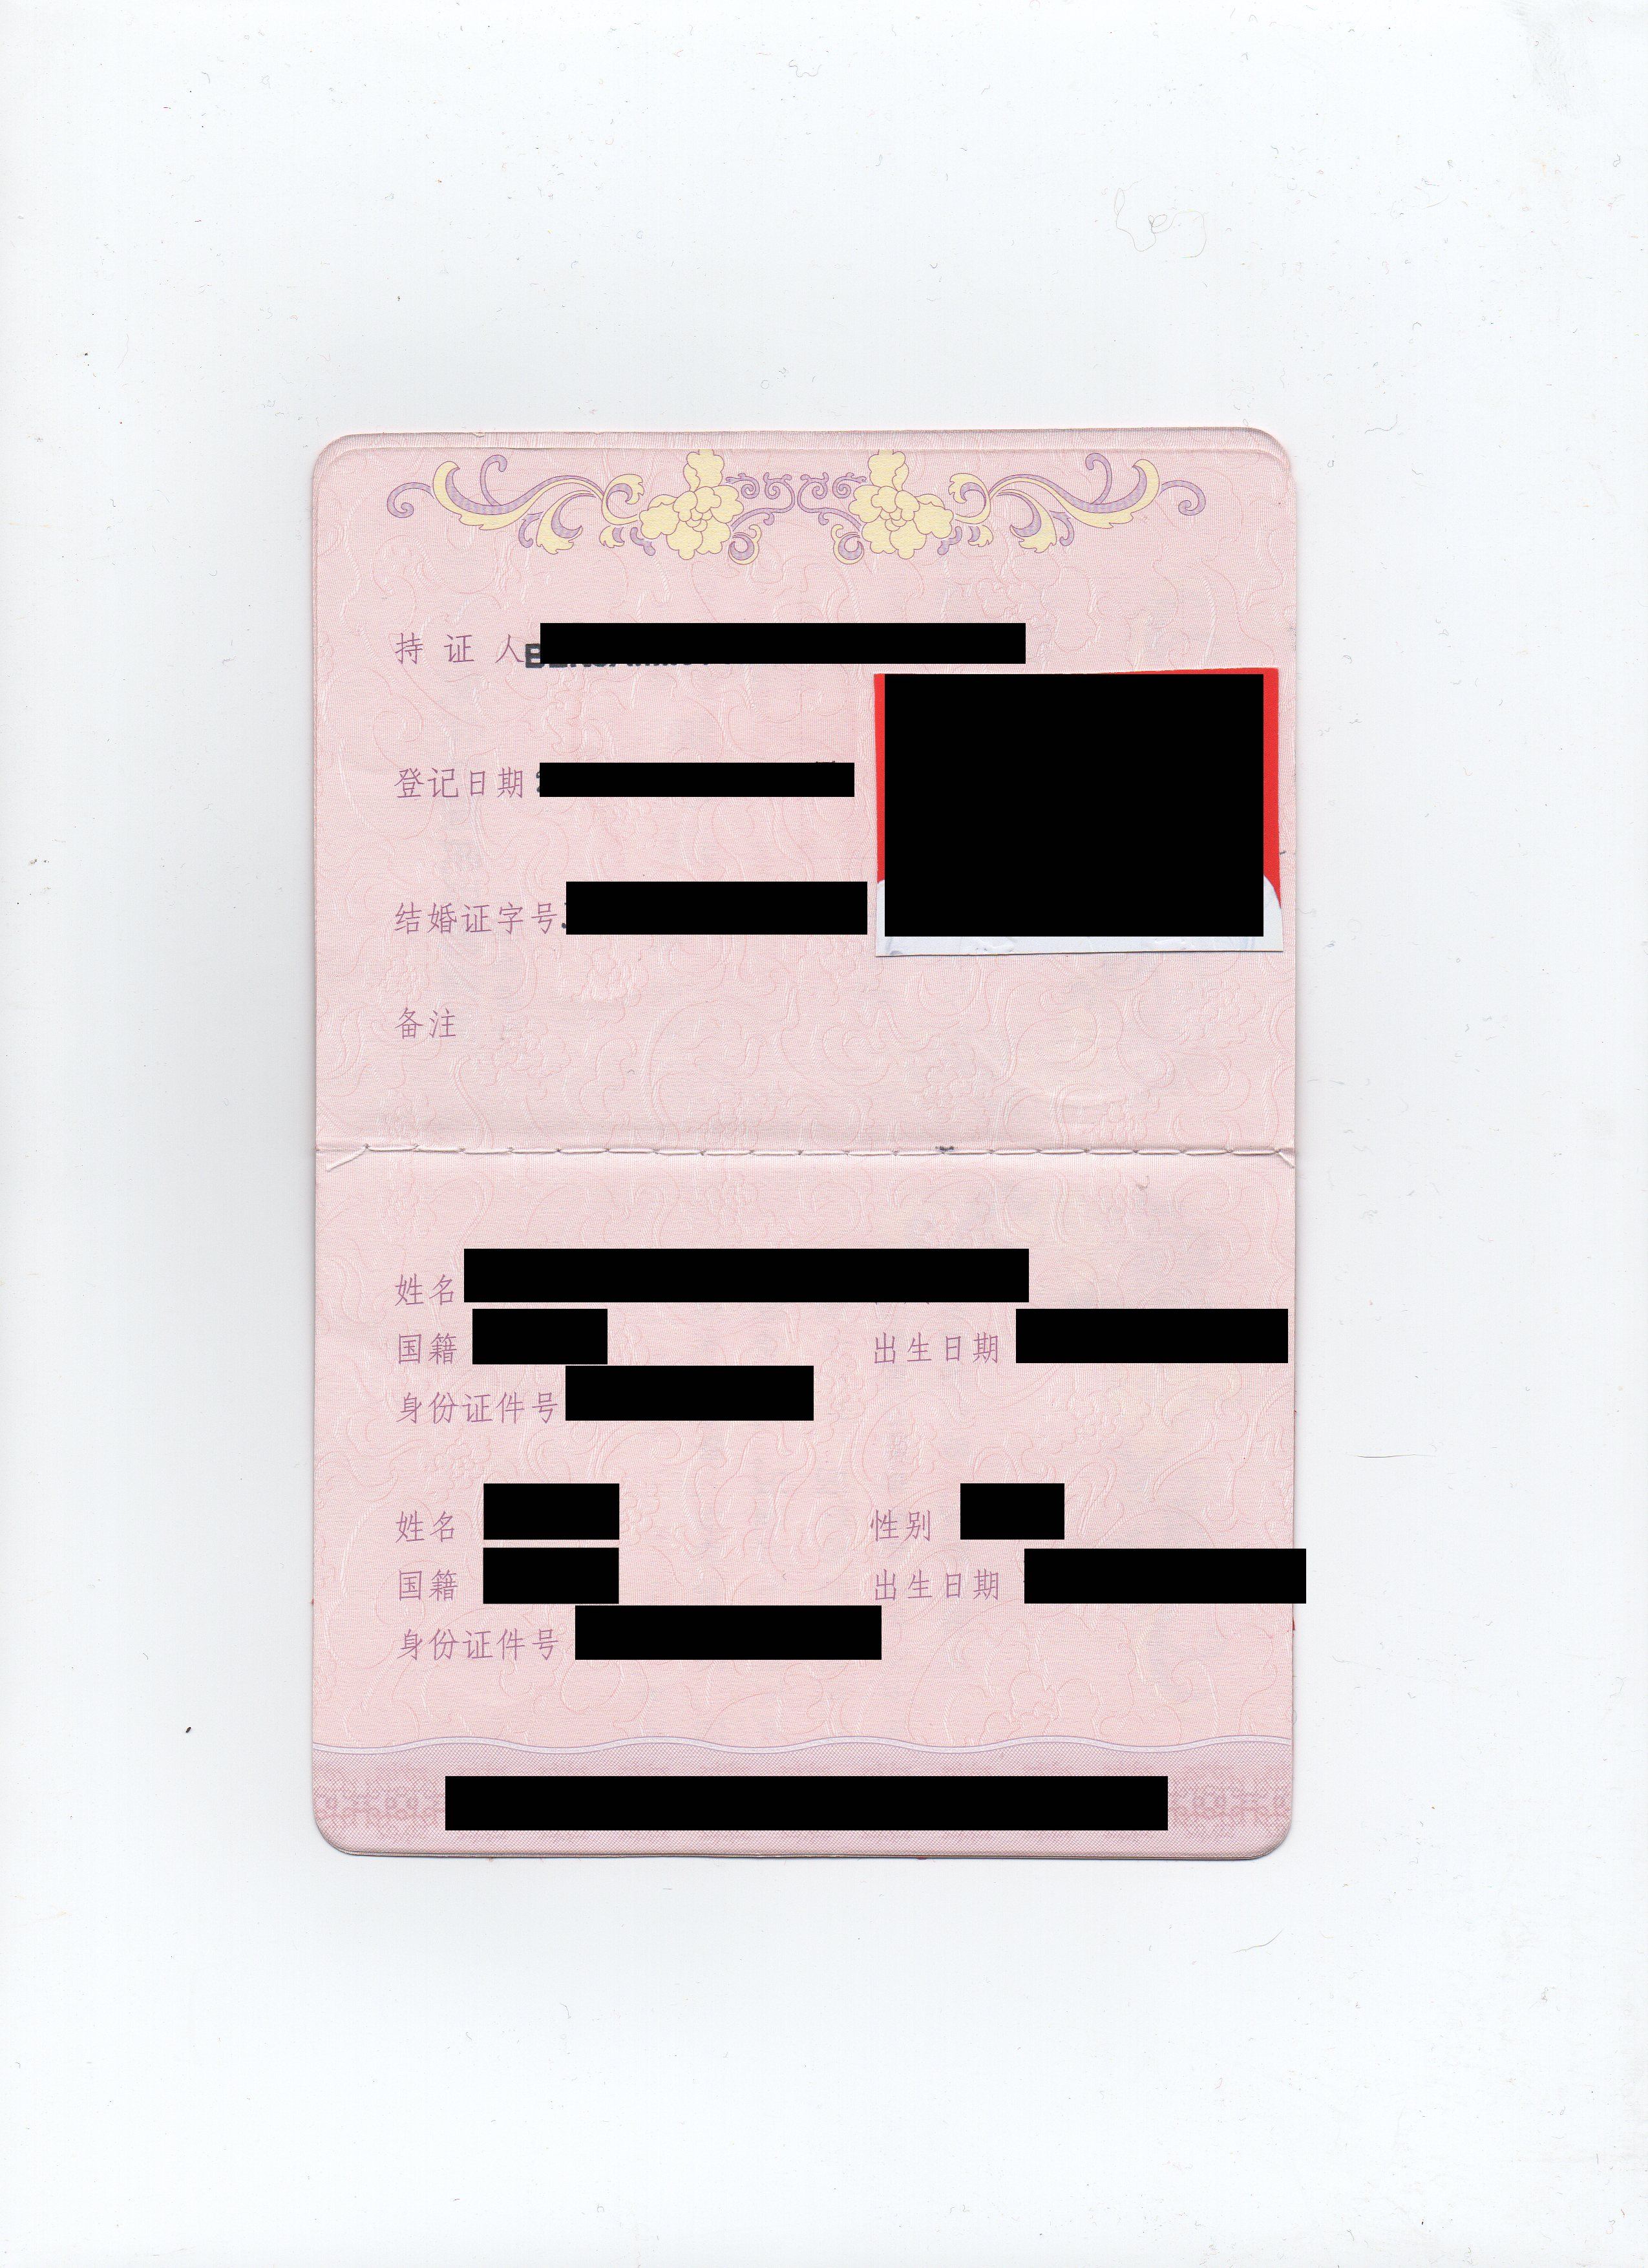 Chinese Marriage Certificate Translation 72 Inc Vat Oracle